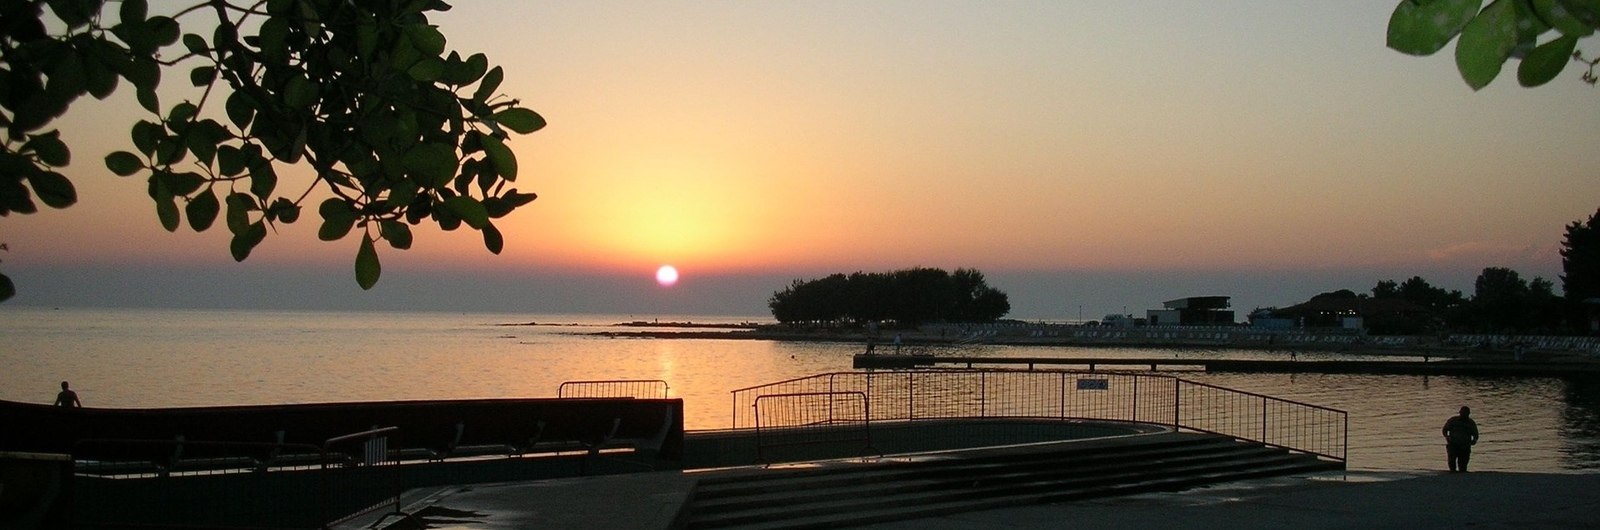 umag city header